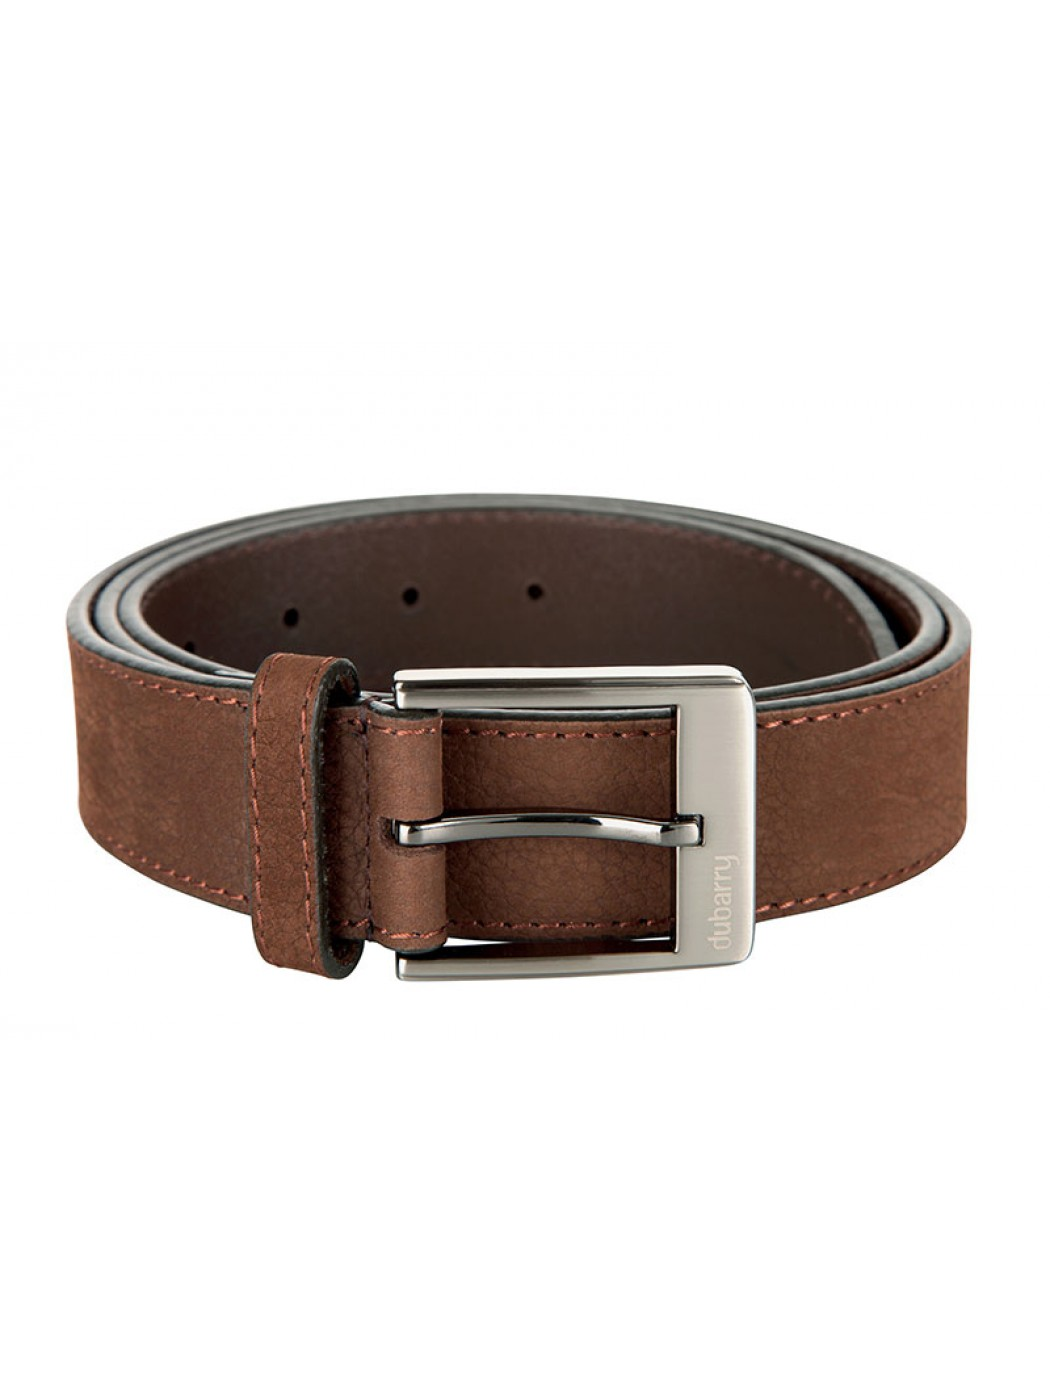 belt-accessories-walnut